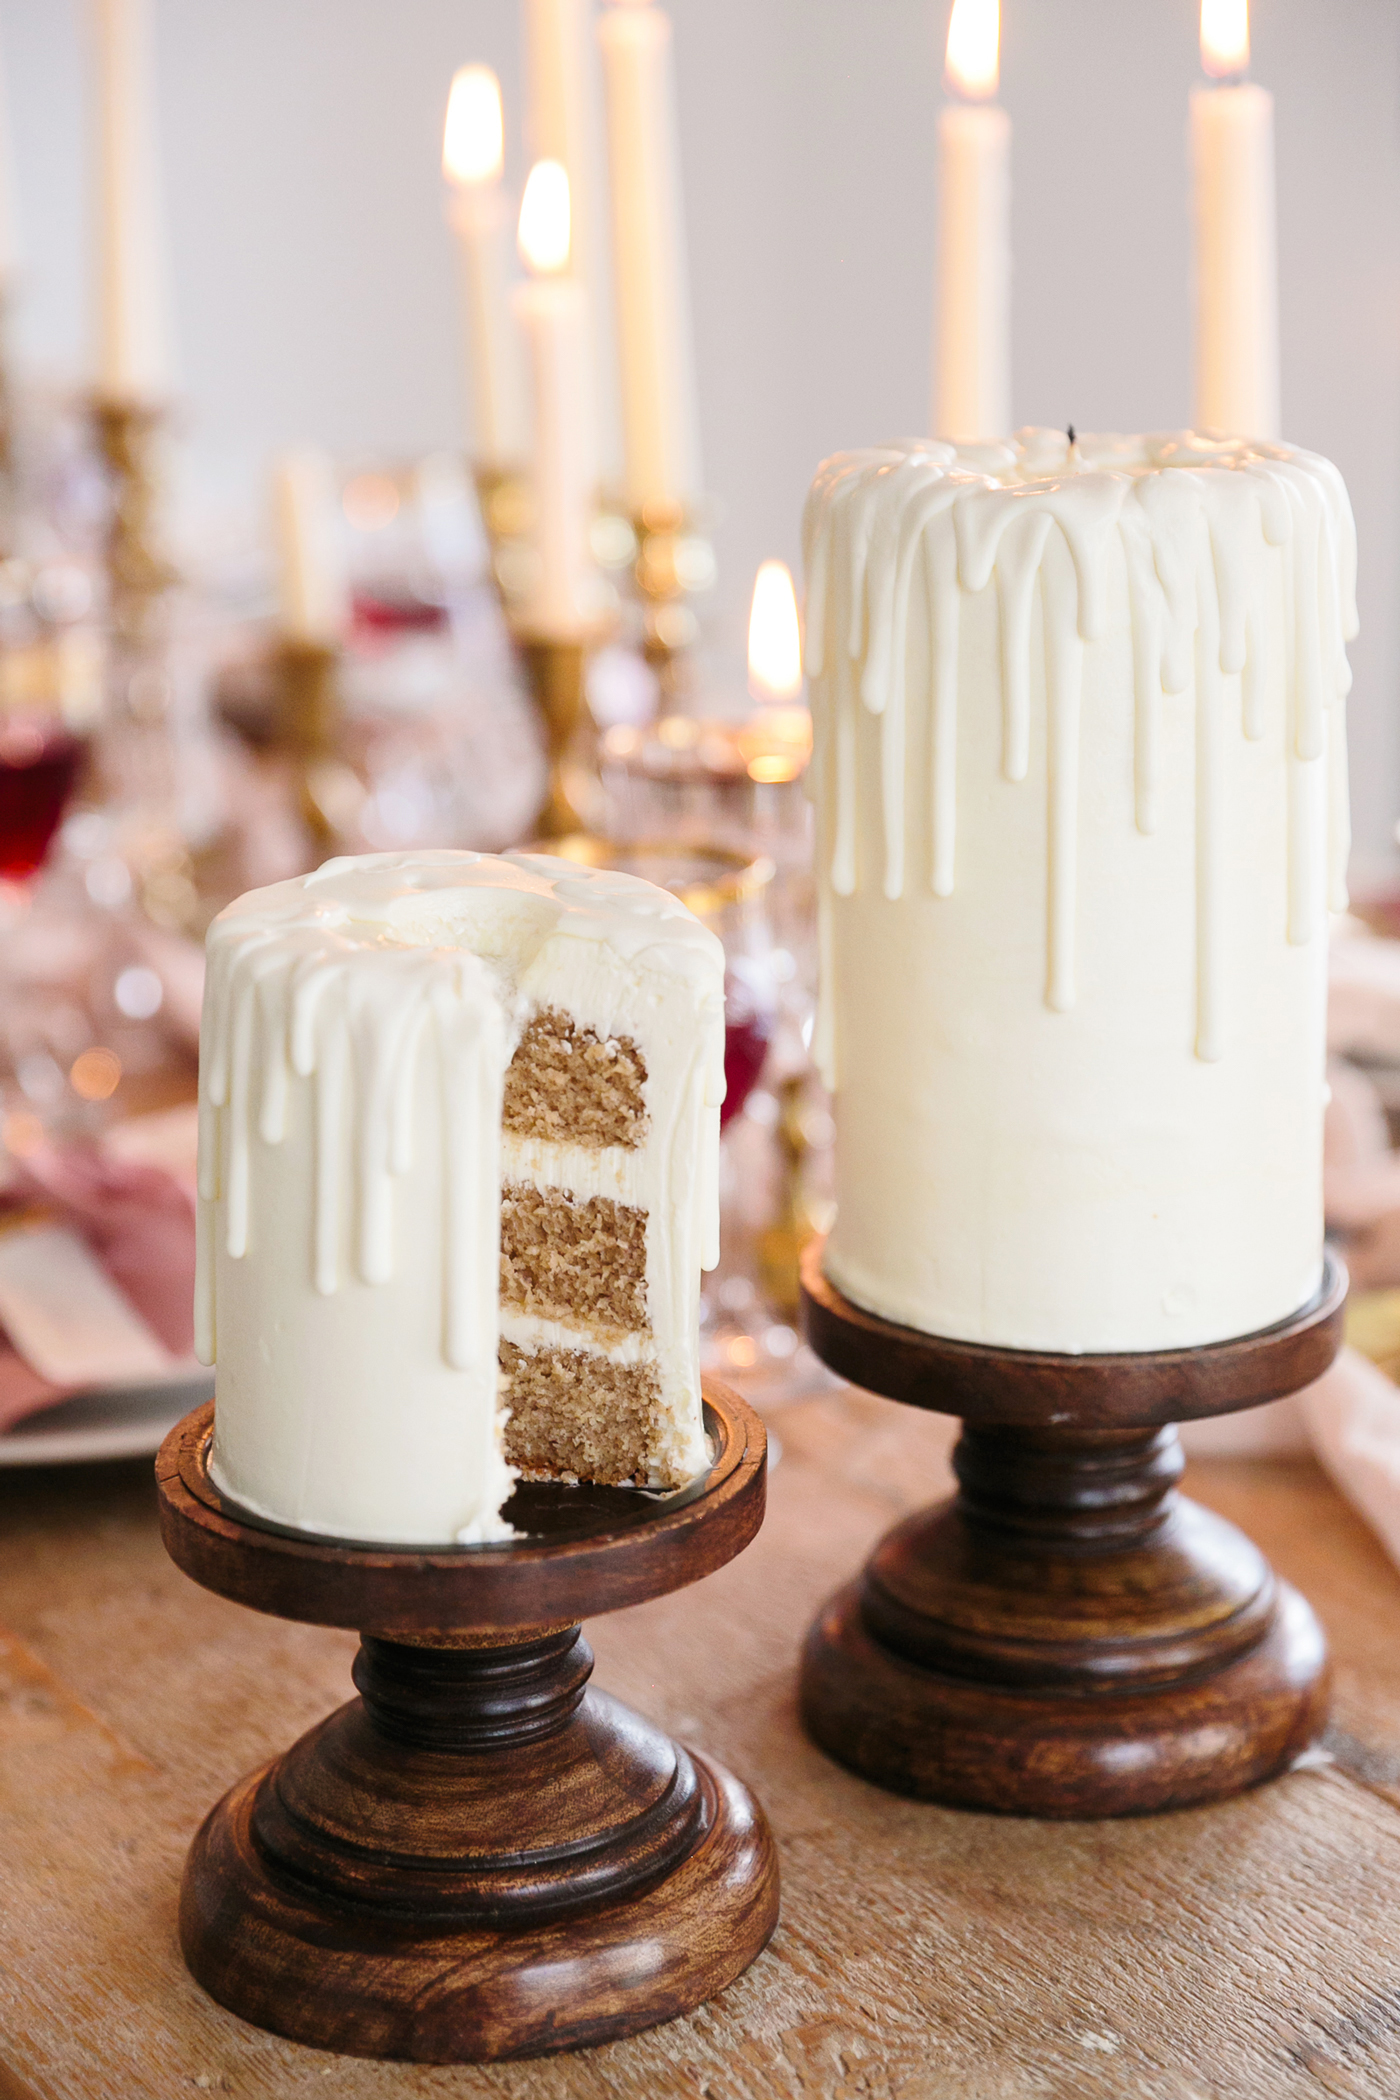 romeo and juliet valentines day party two cakes decorated like white candles dripping wax